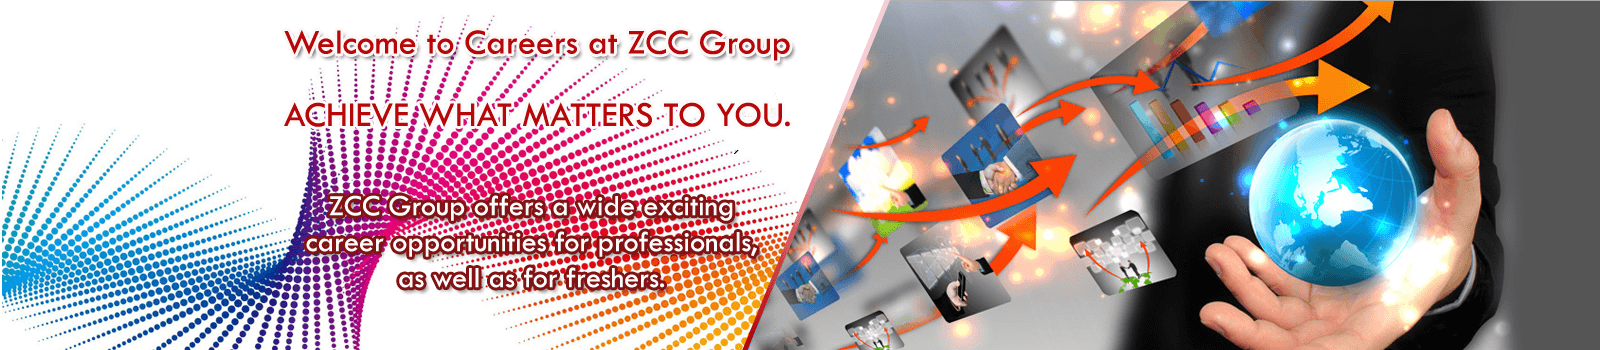 http://www.zccindia.com/wp-content/uploads/2015/04/ZCC-Career-Page-Banner-header.png